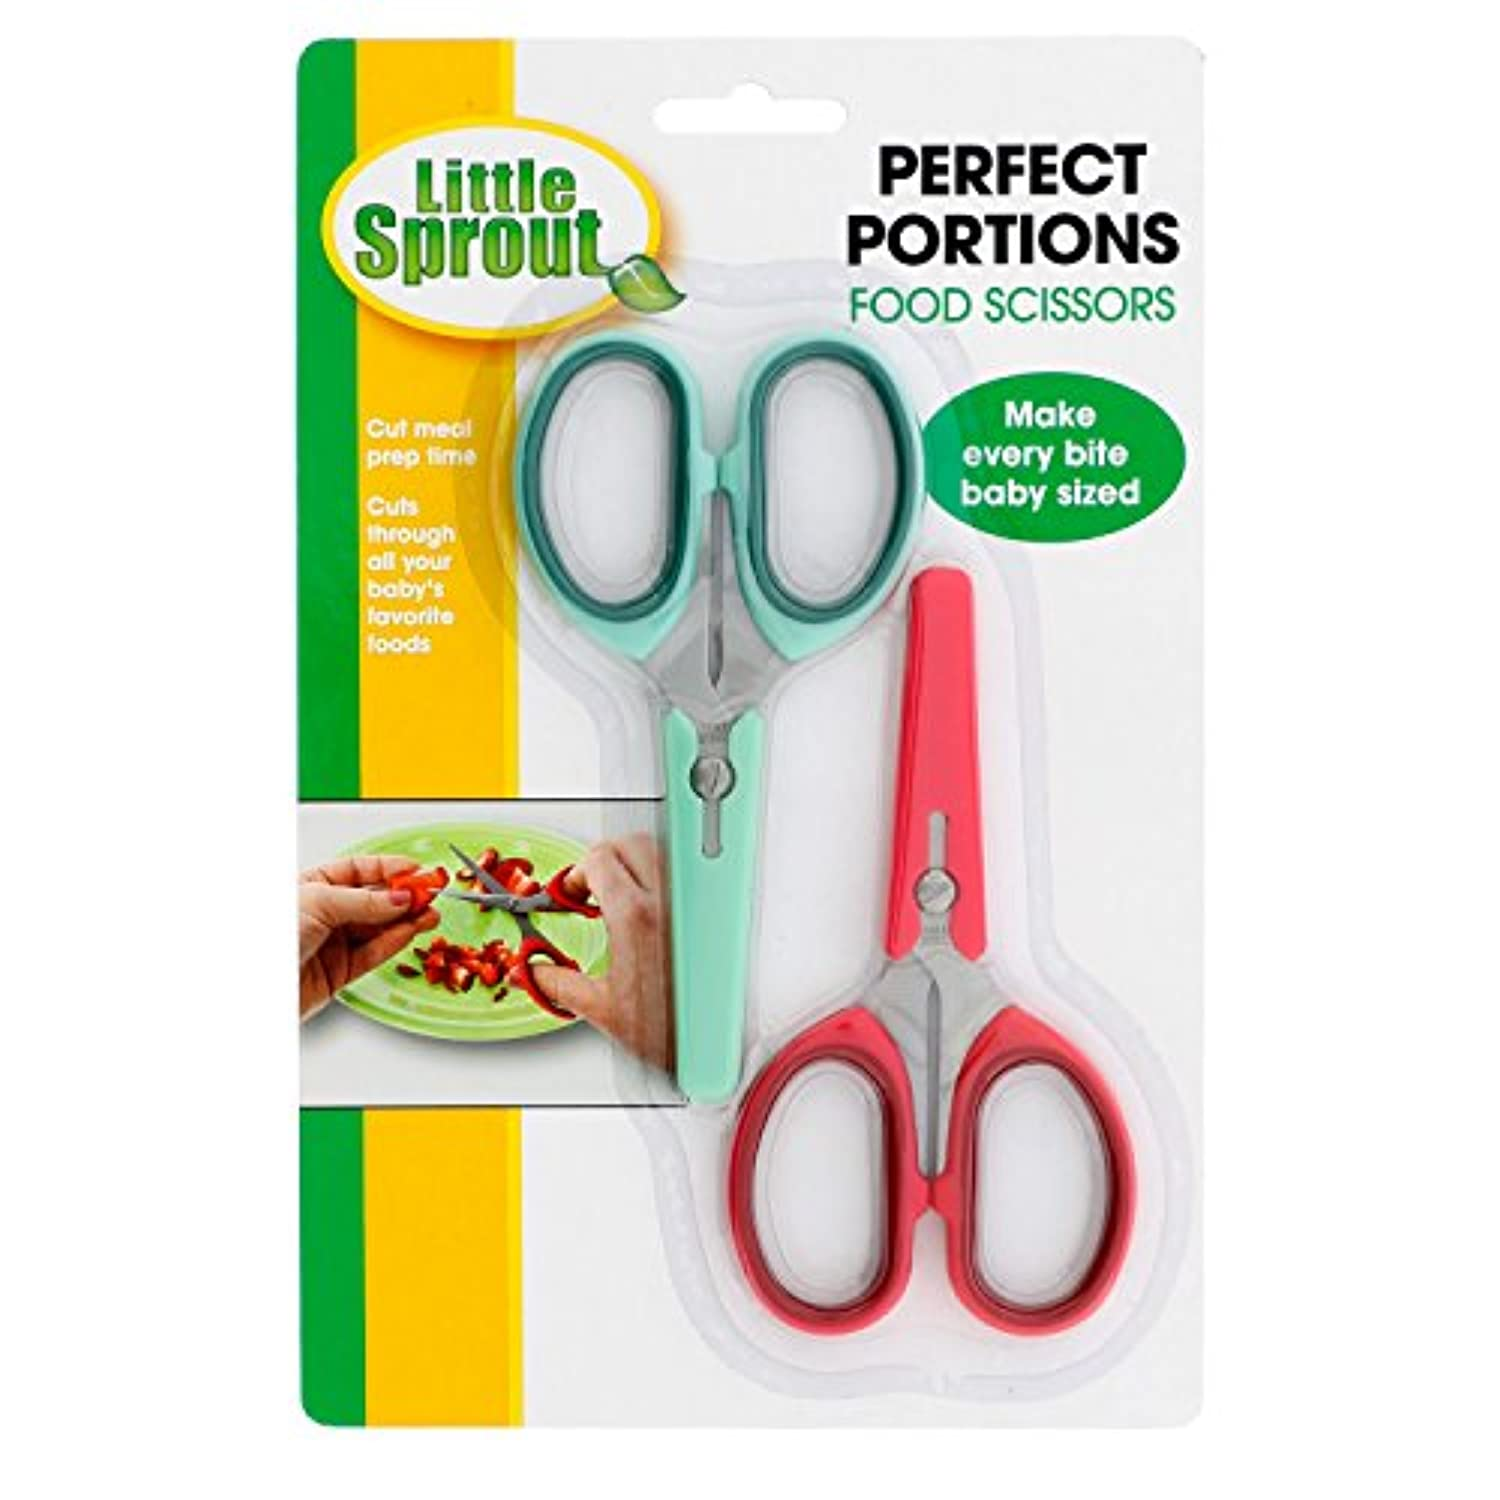 Baby Food Scissors with Covers - Set of 2 Shears to Make Every Bite Baby Sized by Little Sprout